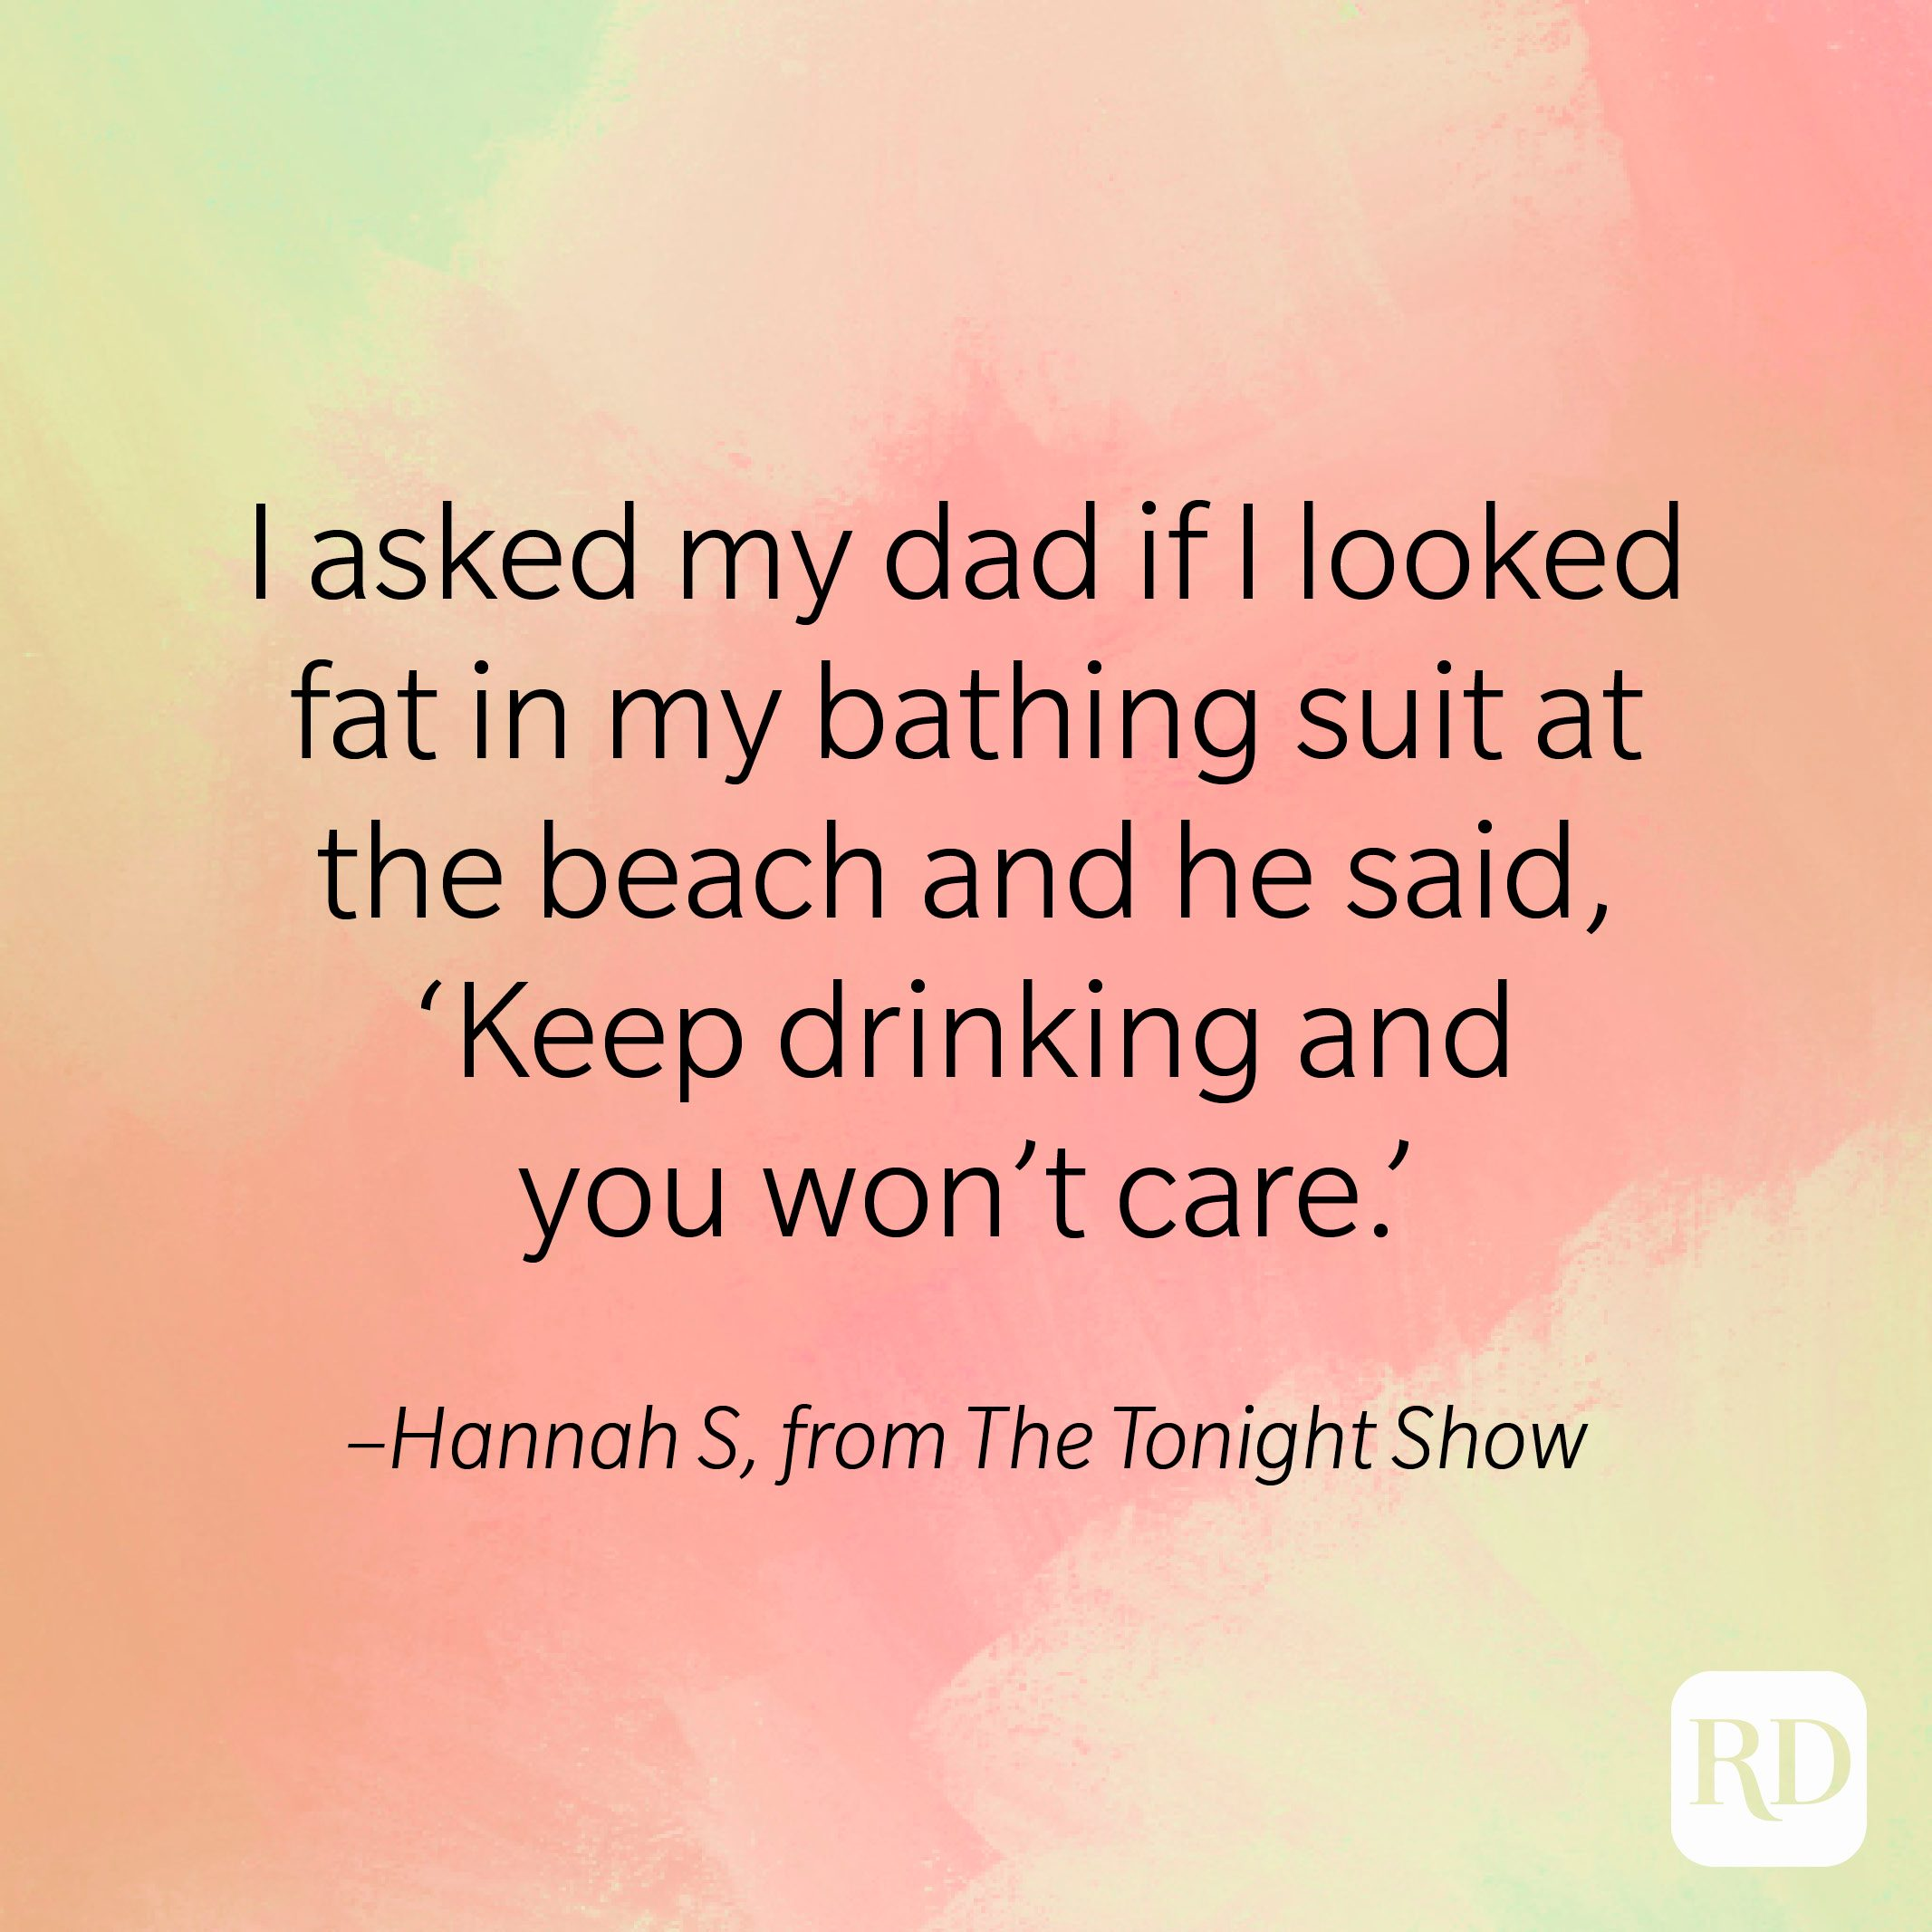 """""""I asked my dad if I looked fat in my bathing suit at the beach and he said 'Keep drinking and you won't care."""" –Hannah S, from The Tonight Show."""